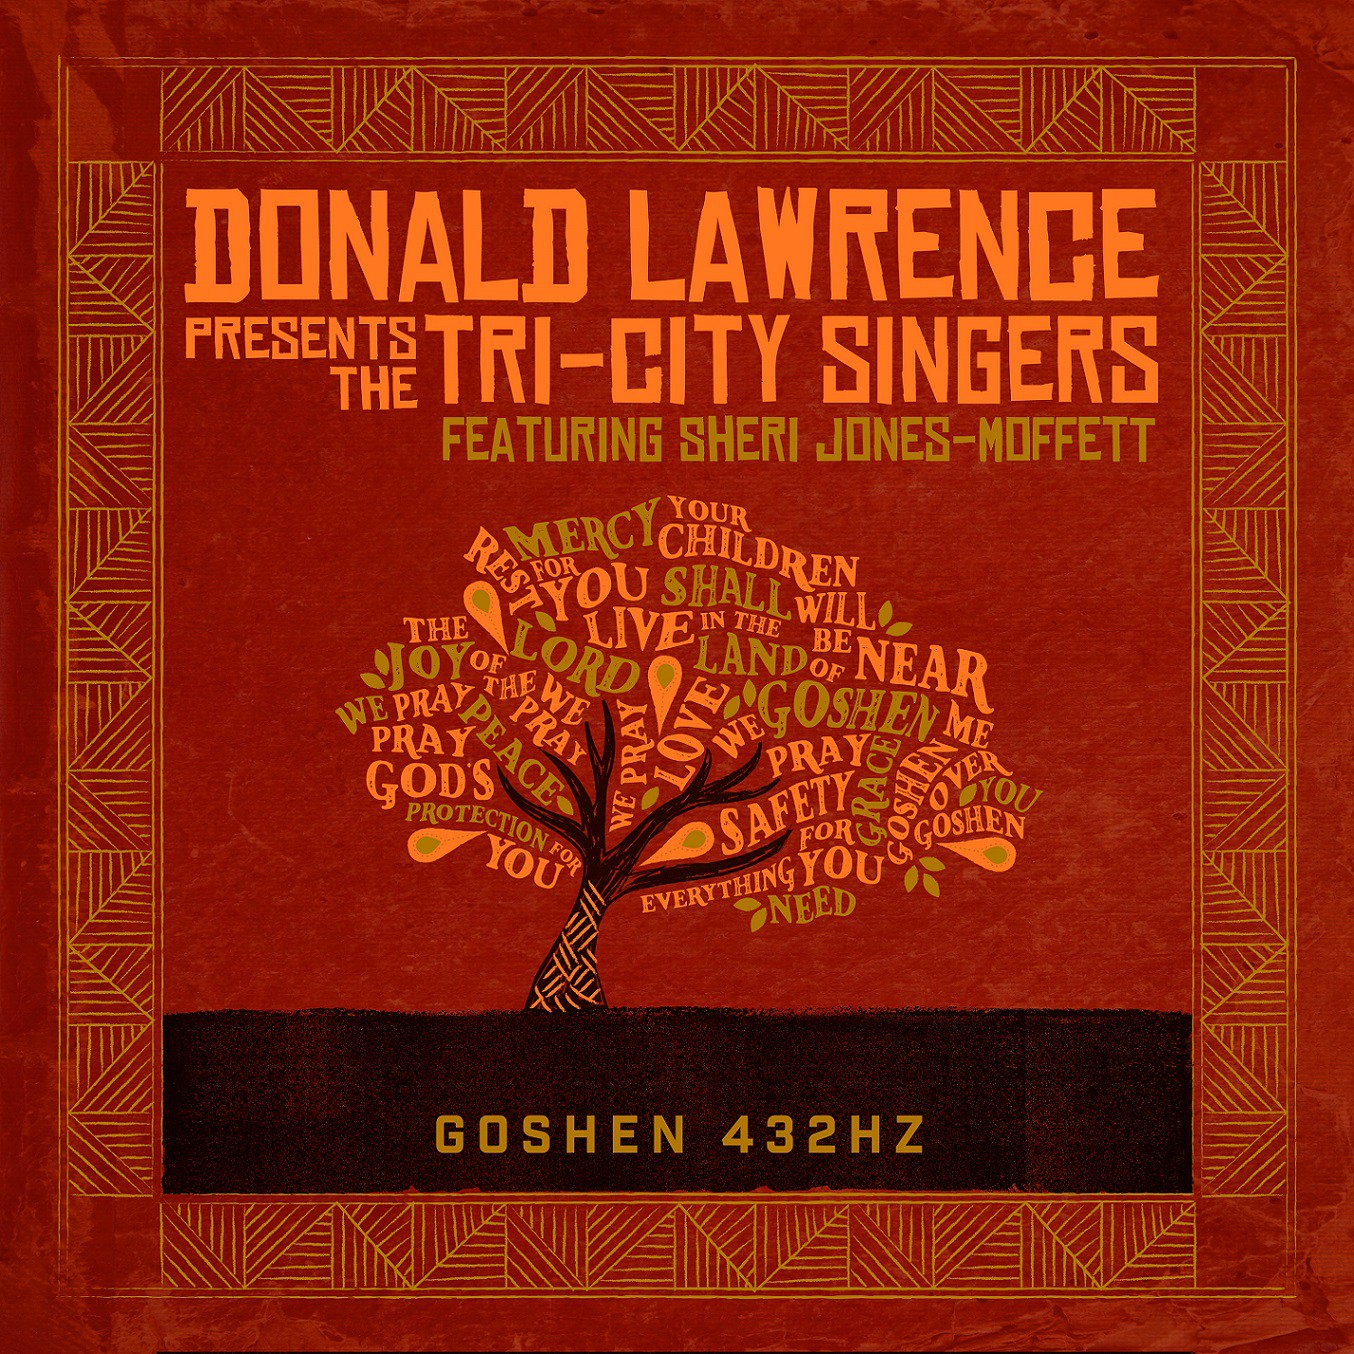 Donald lawrence the gift youtube.